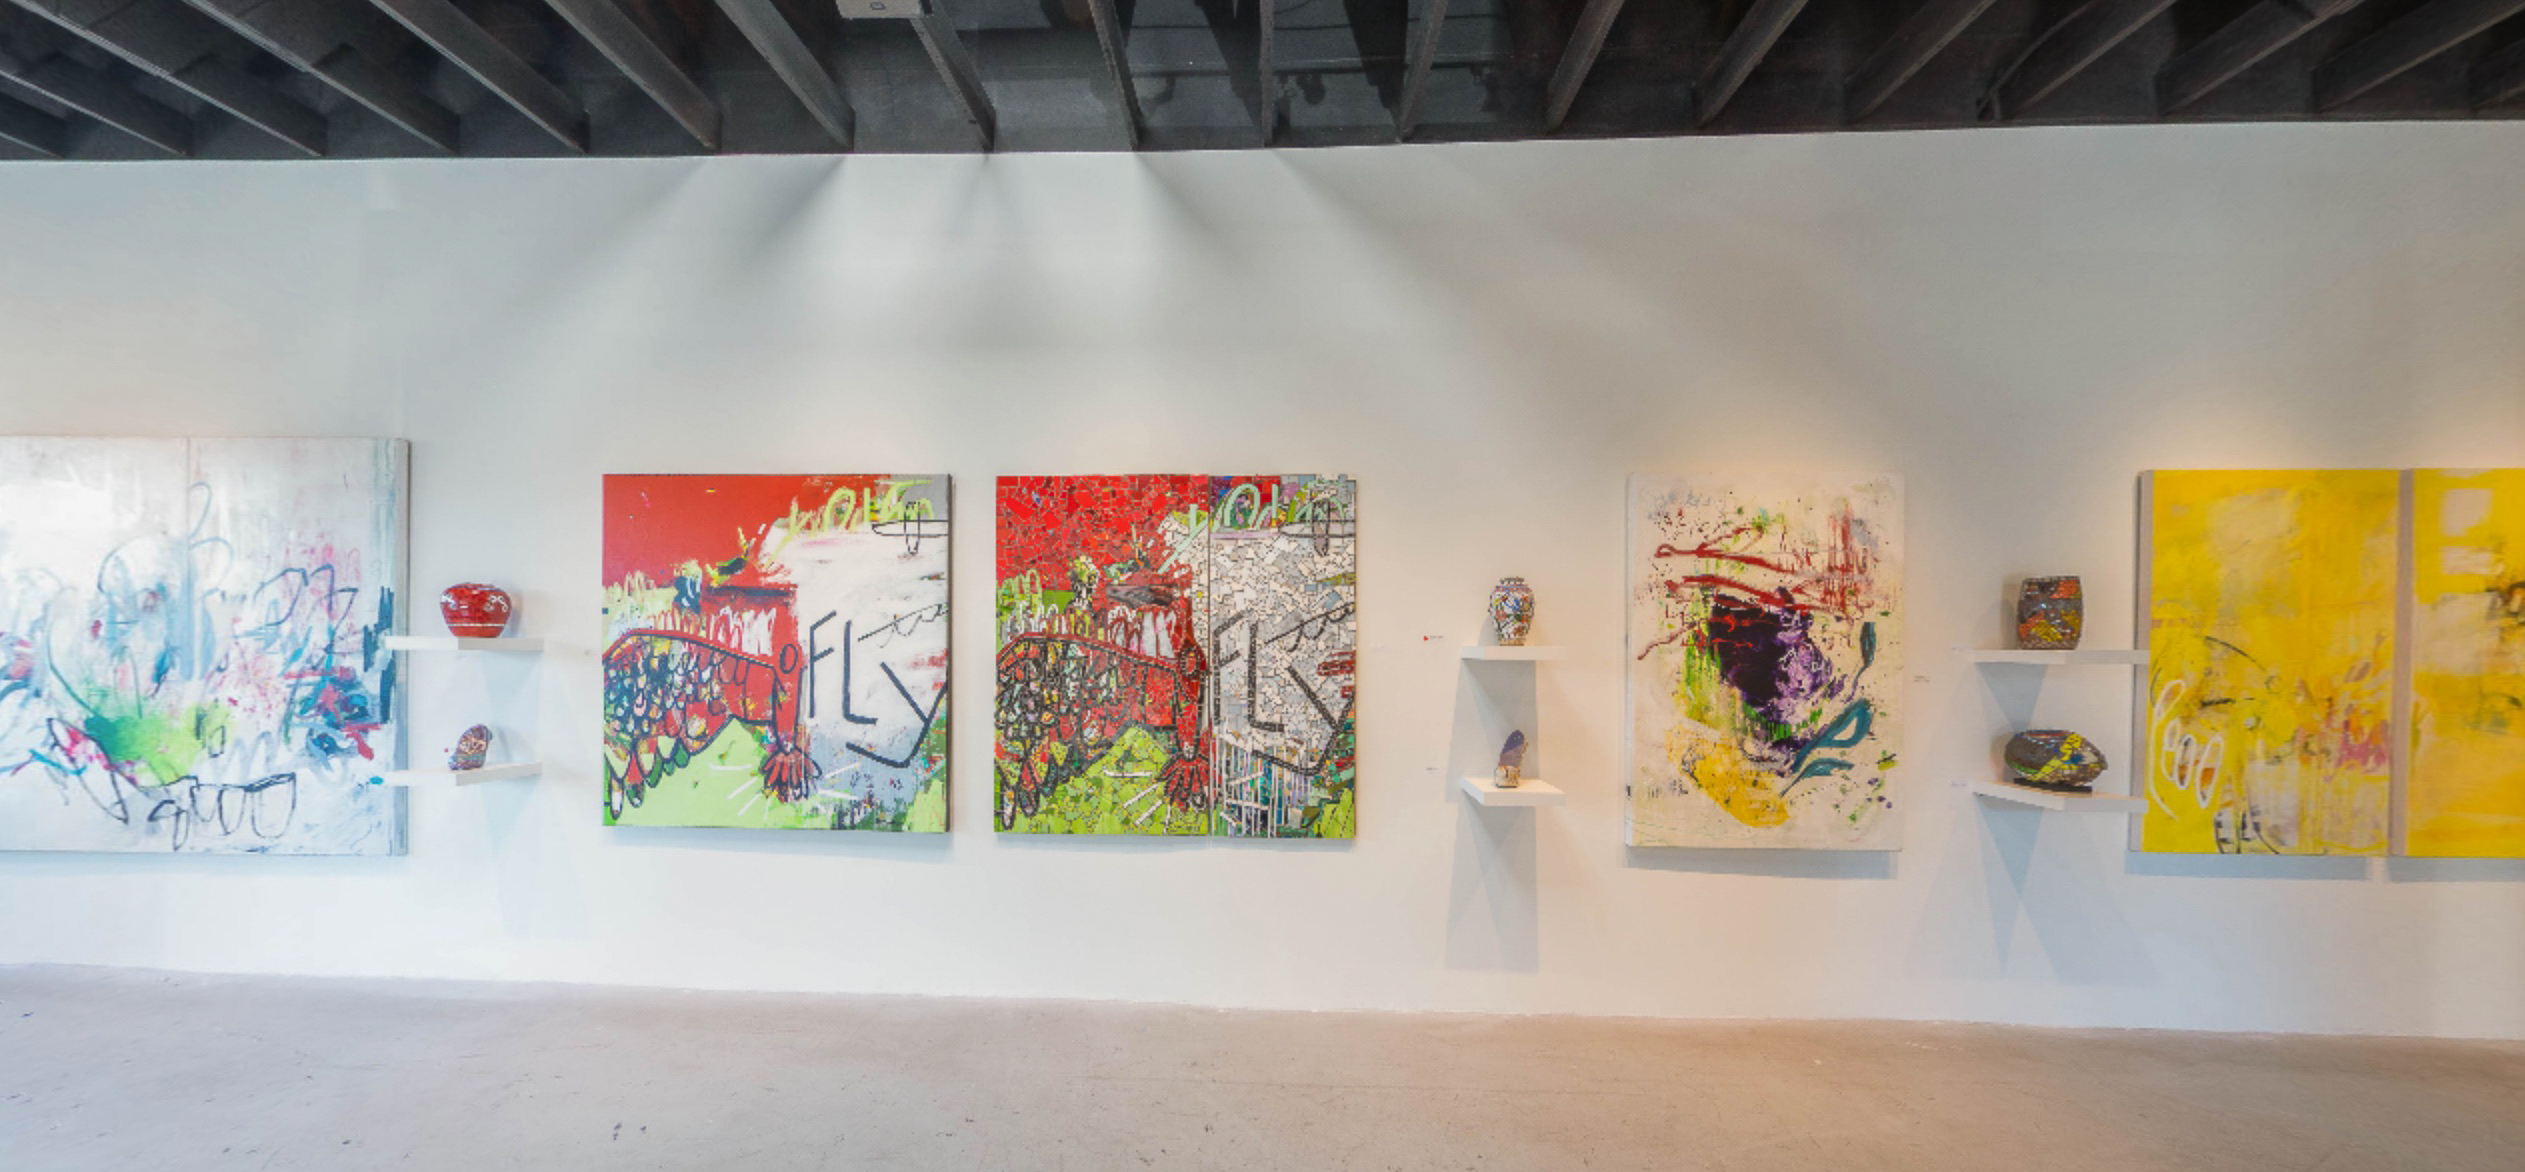 Extra Large Contemporary Abstract Painting Blue Diptych Urban Industrial Loft Graffiti Street Laura Letchinger